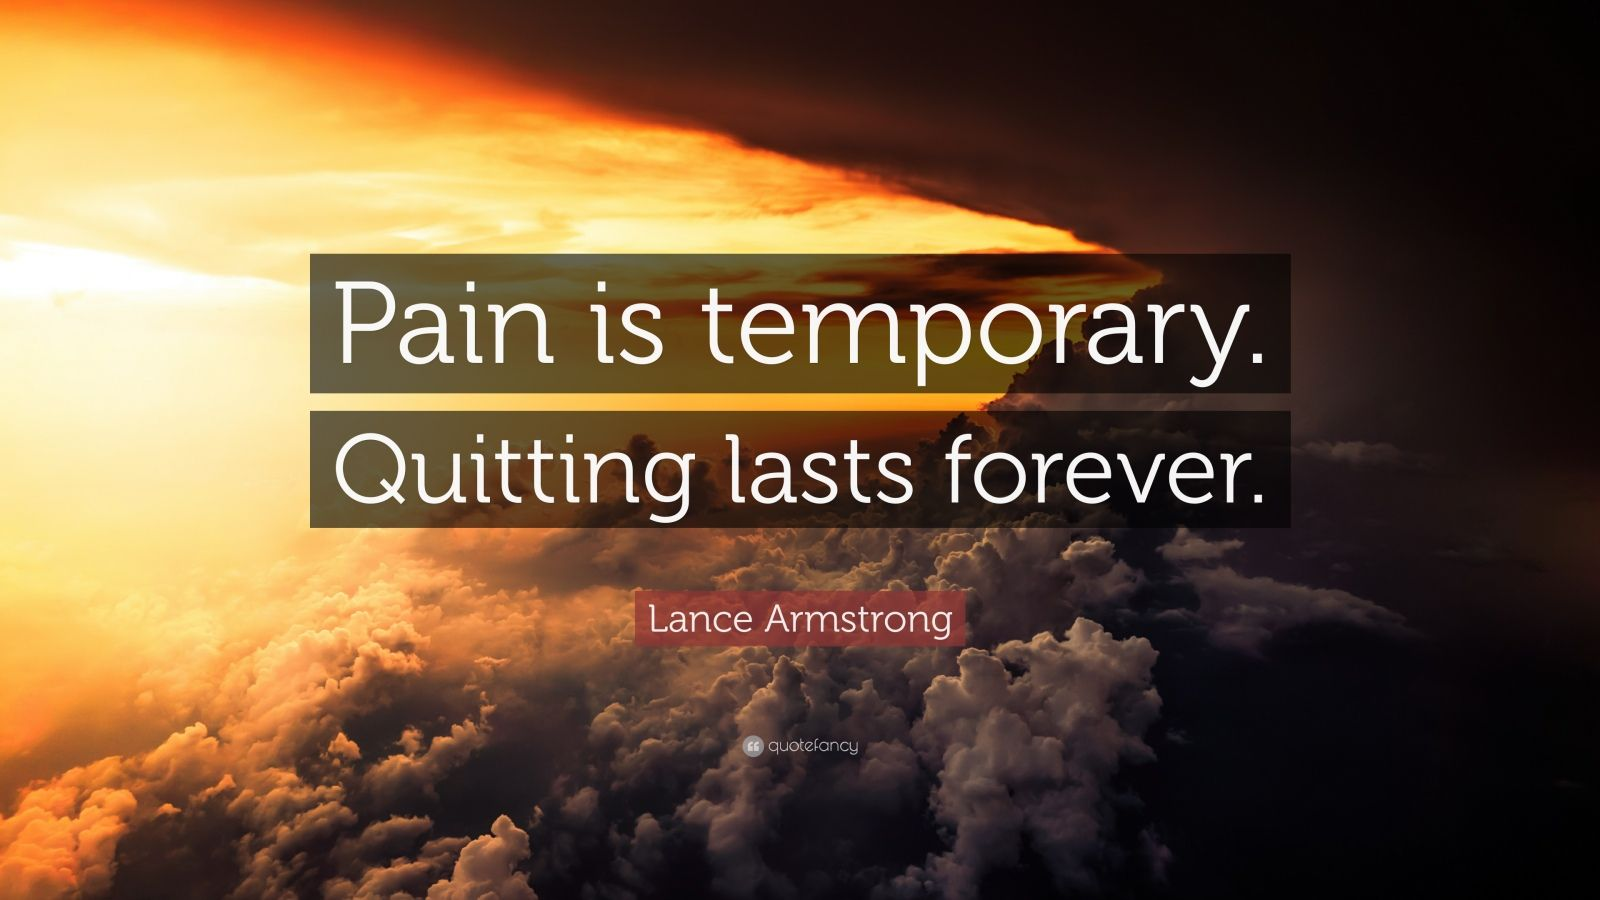 Hd Motivational Quotes Wallpapers Lance Armstrong Quote Pain Is Temporary Quitting Lasts